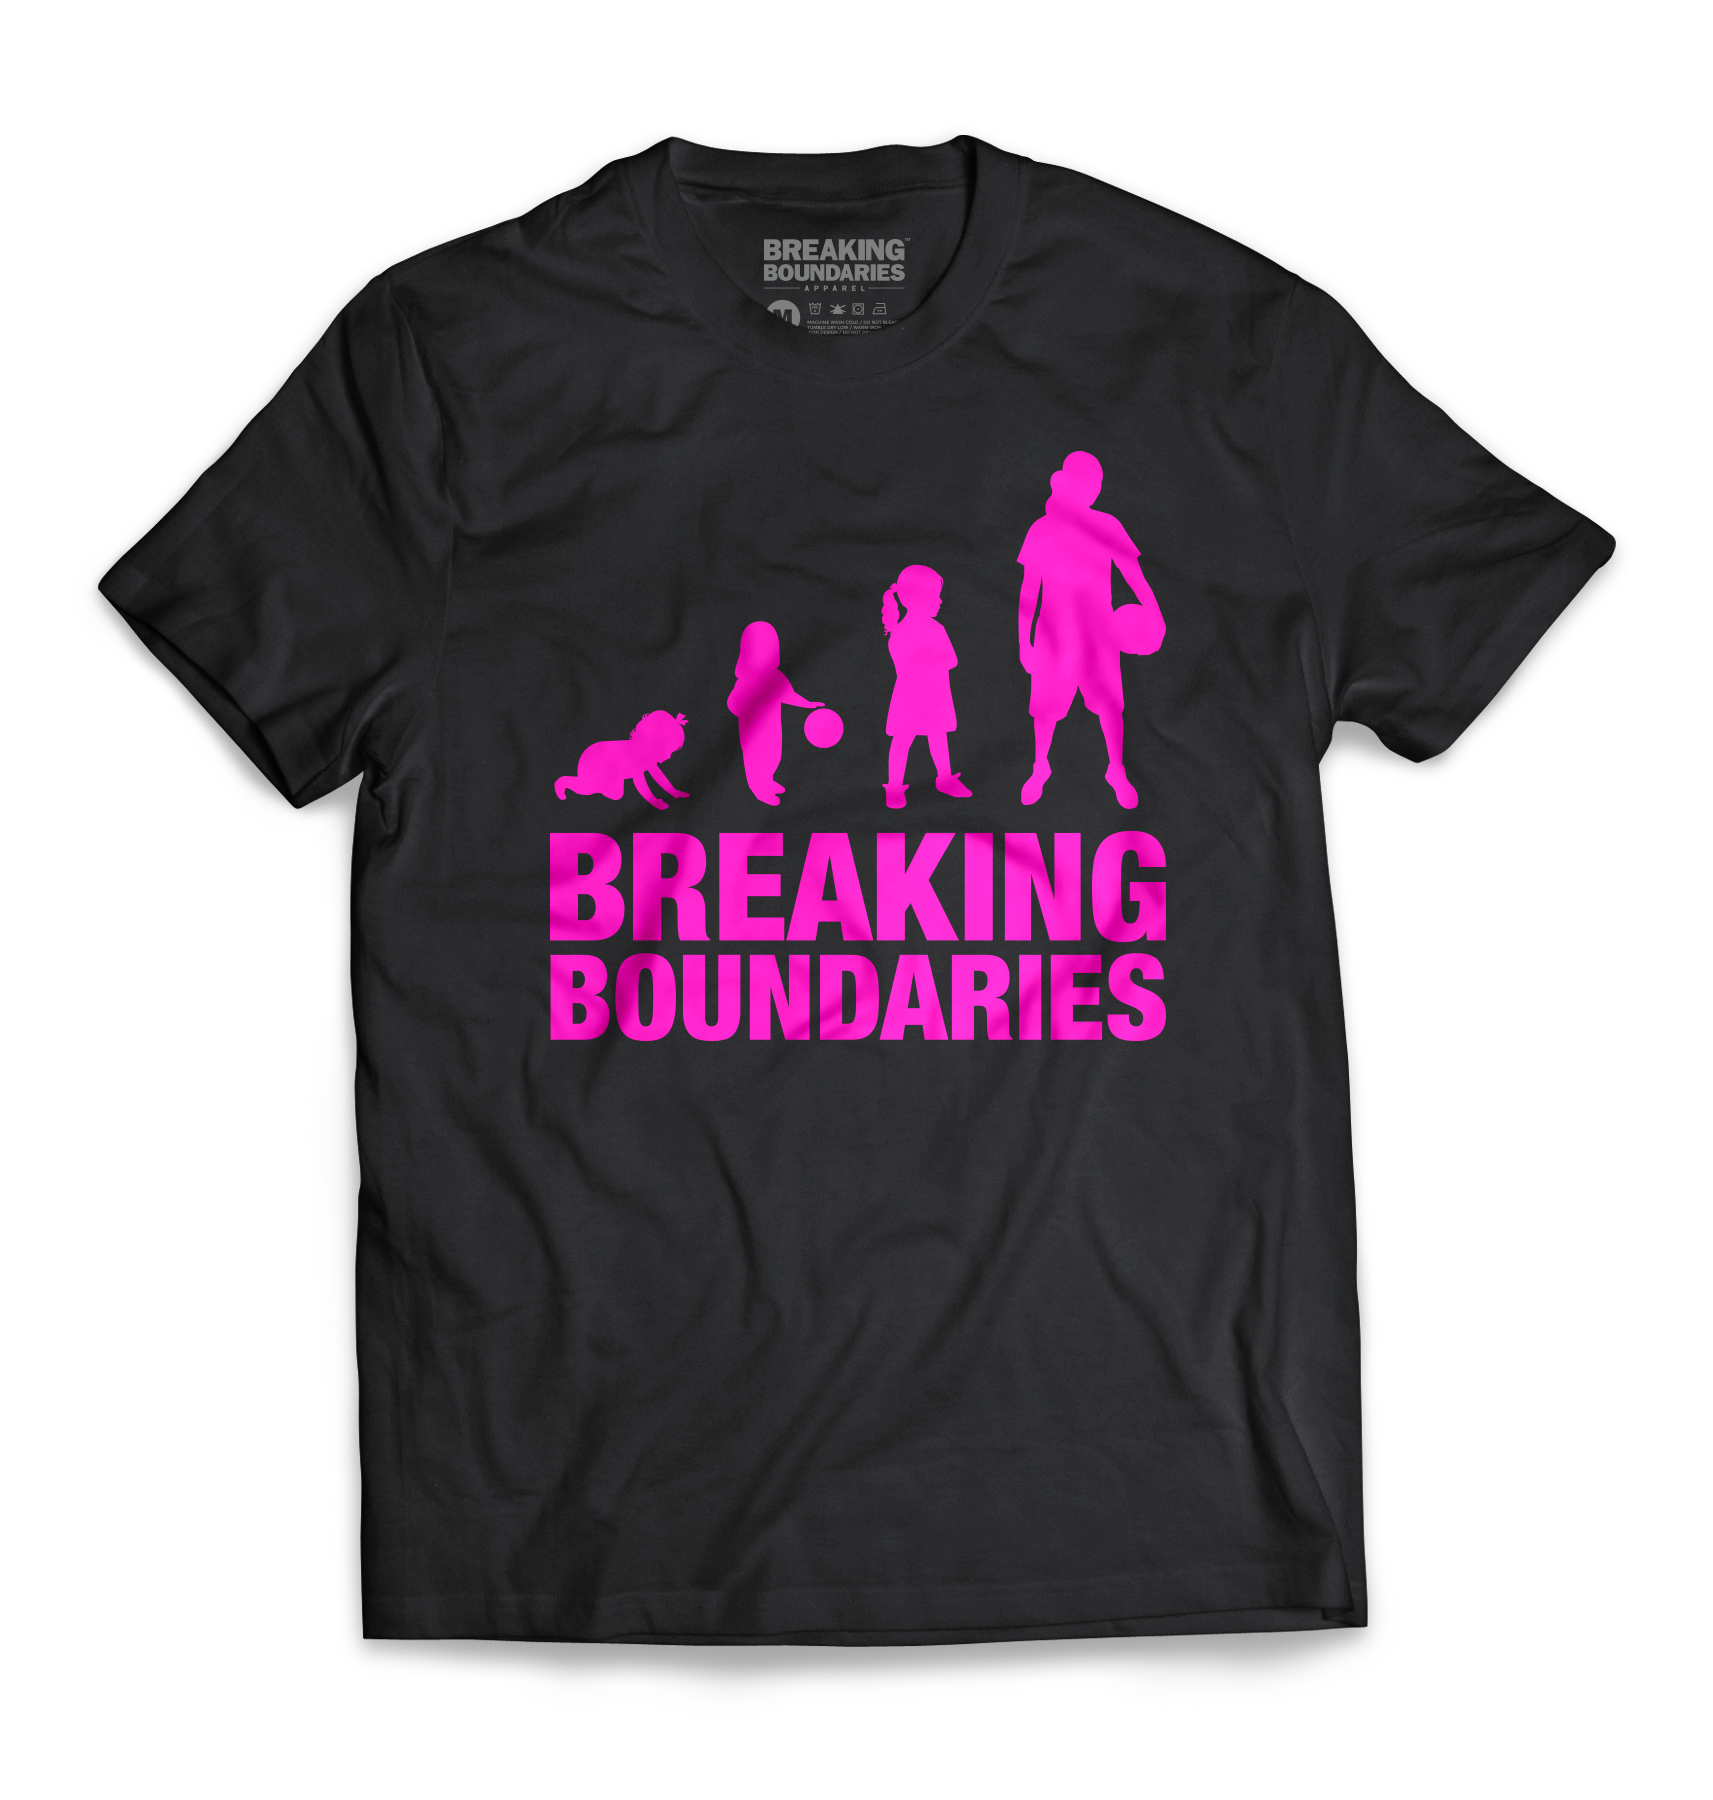 Evolution Tee - Women's Basketball (Black/Pink) - Breaking Boundaries Apparel  - 1